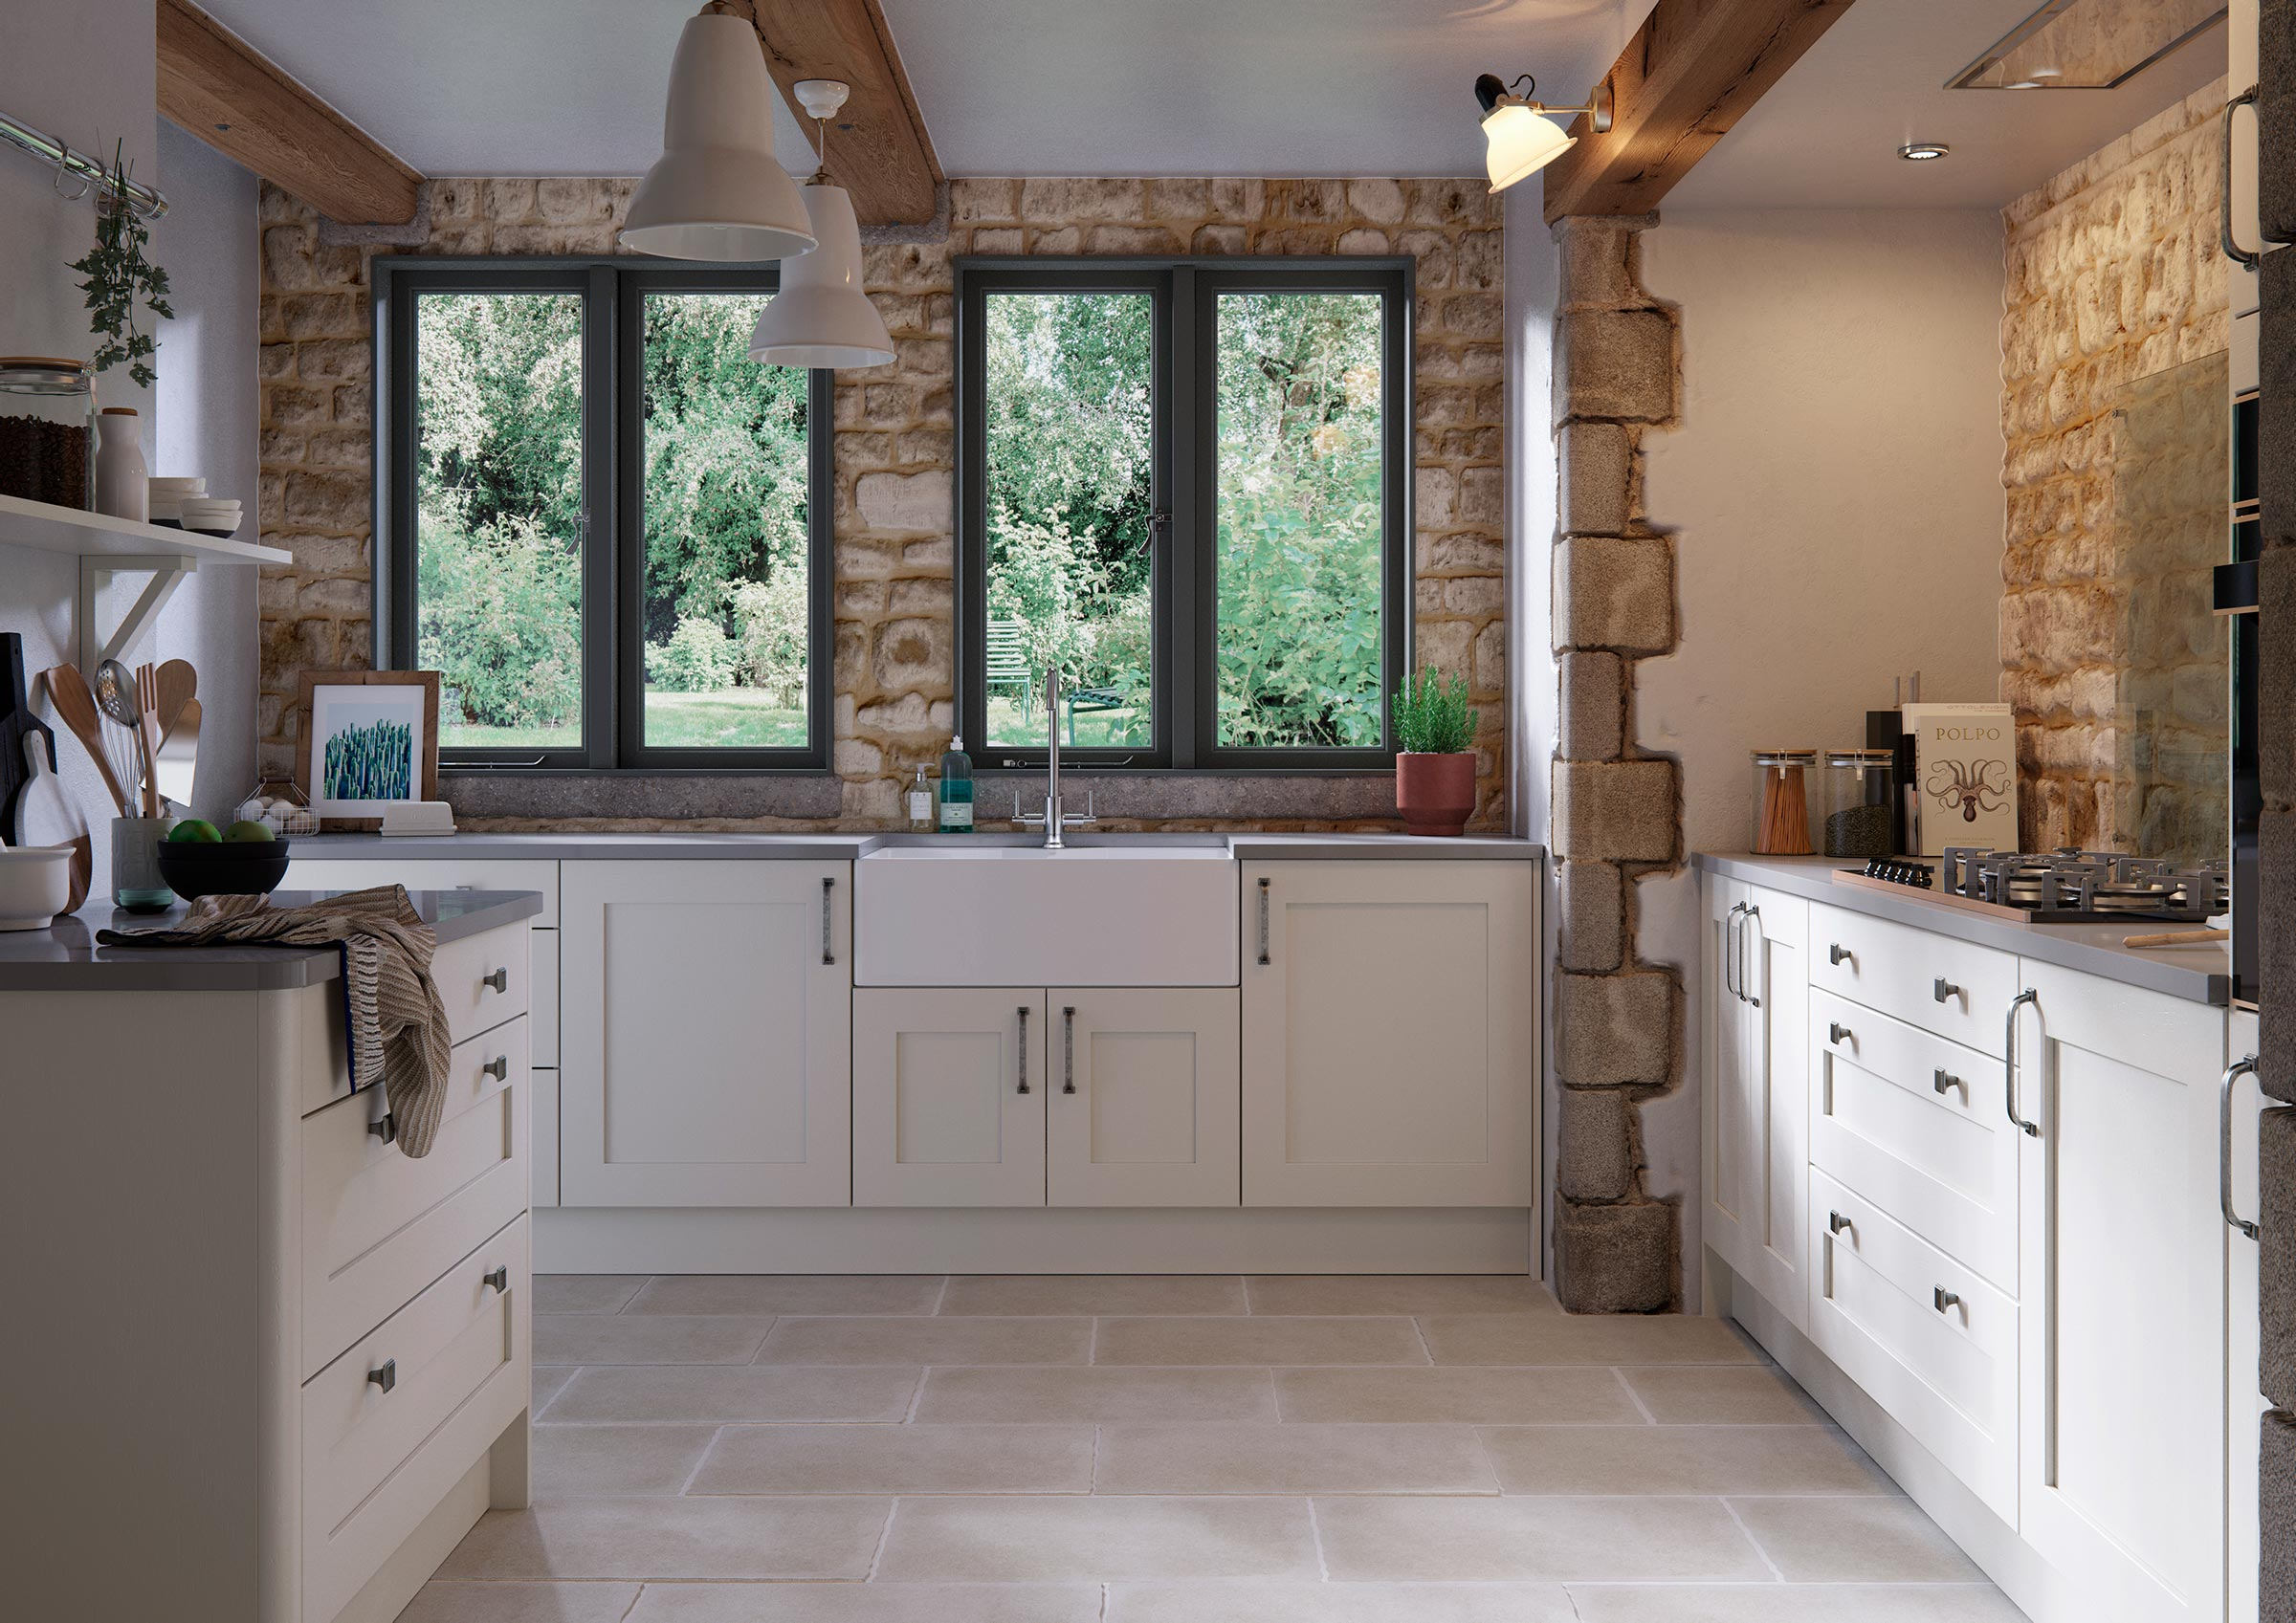 Contemporary country style shaker kitchen cream with grey quartz worktops